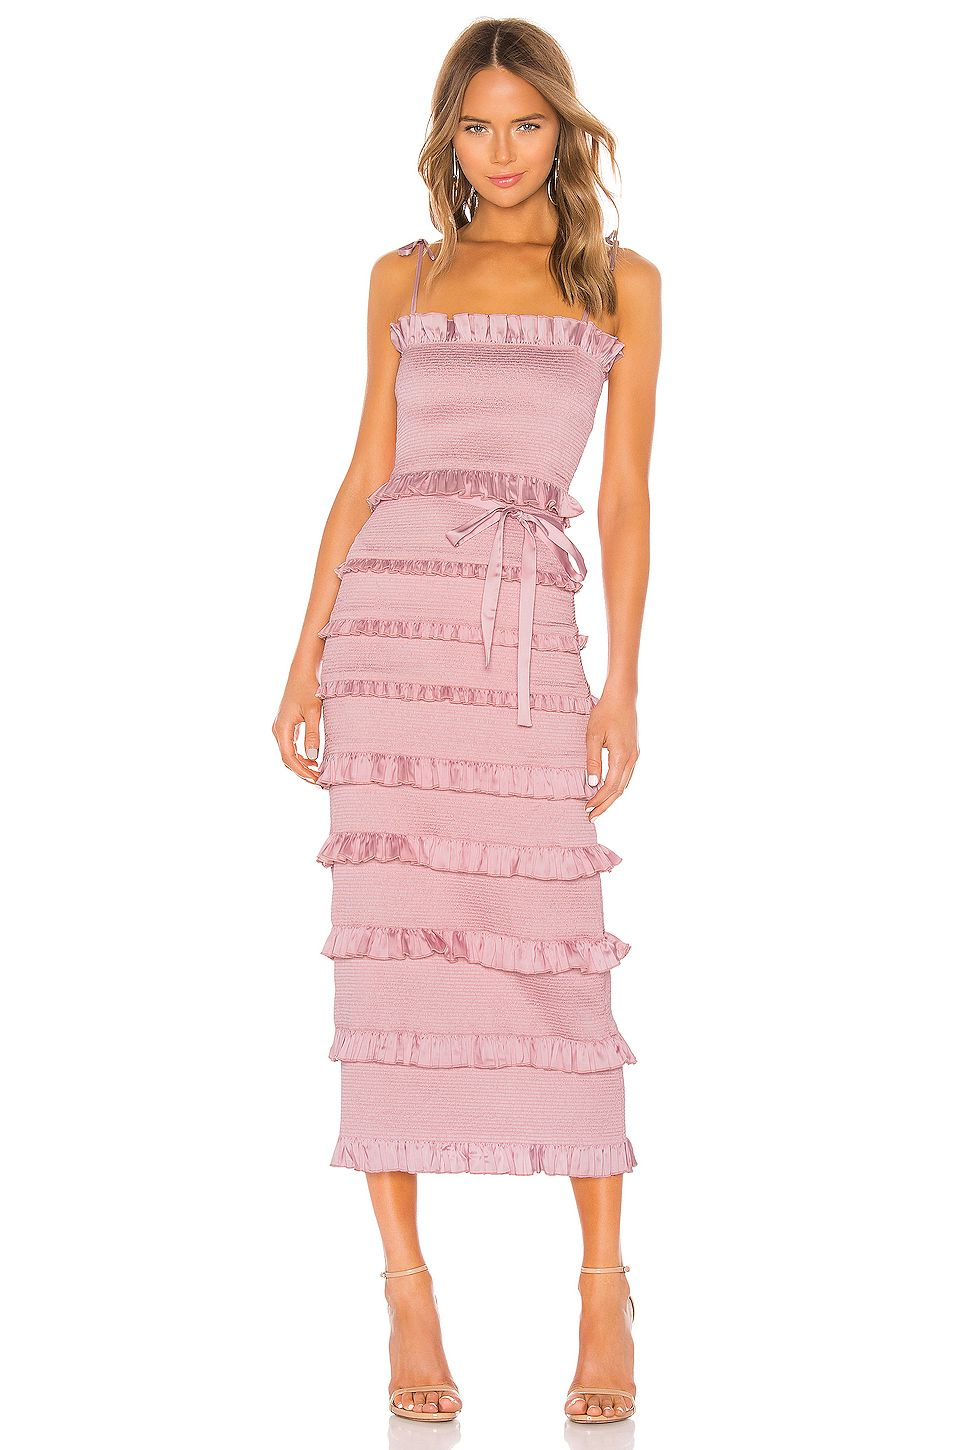 Lily Dress In 2020 Dresses Fashion Clothes Women Wedding Guest Outfit Spring Check out what the dress looked like on at the wedding here: pinterest